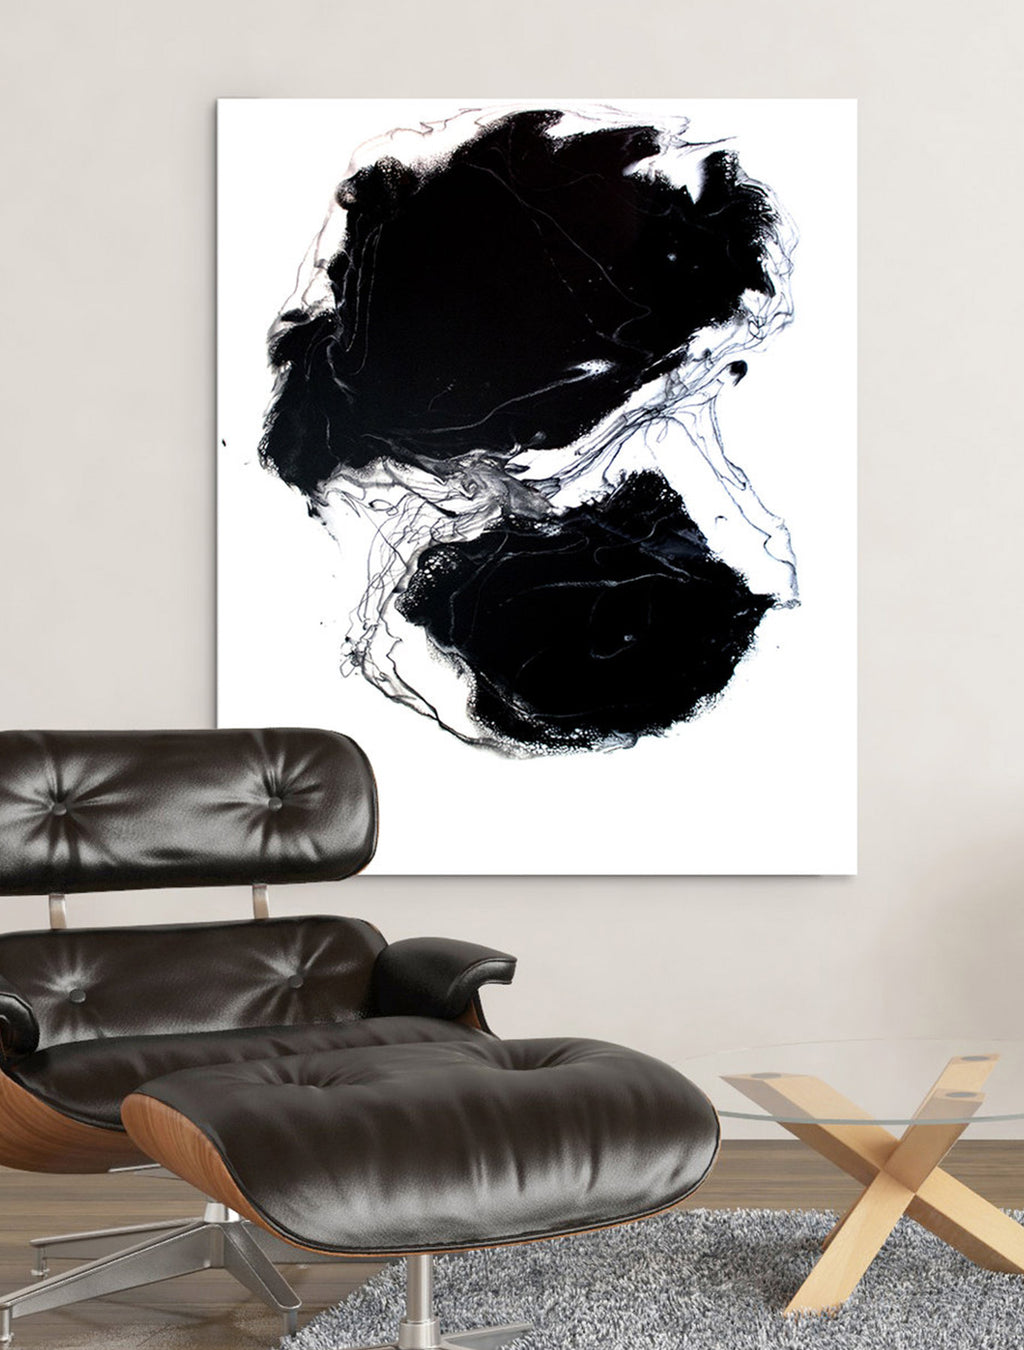 Deep Dark Secrets on Wall - Abstract Painting by Paige Ring